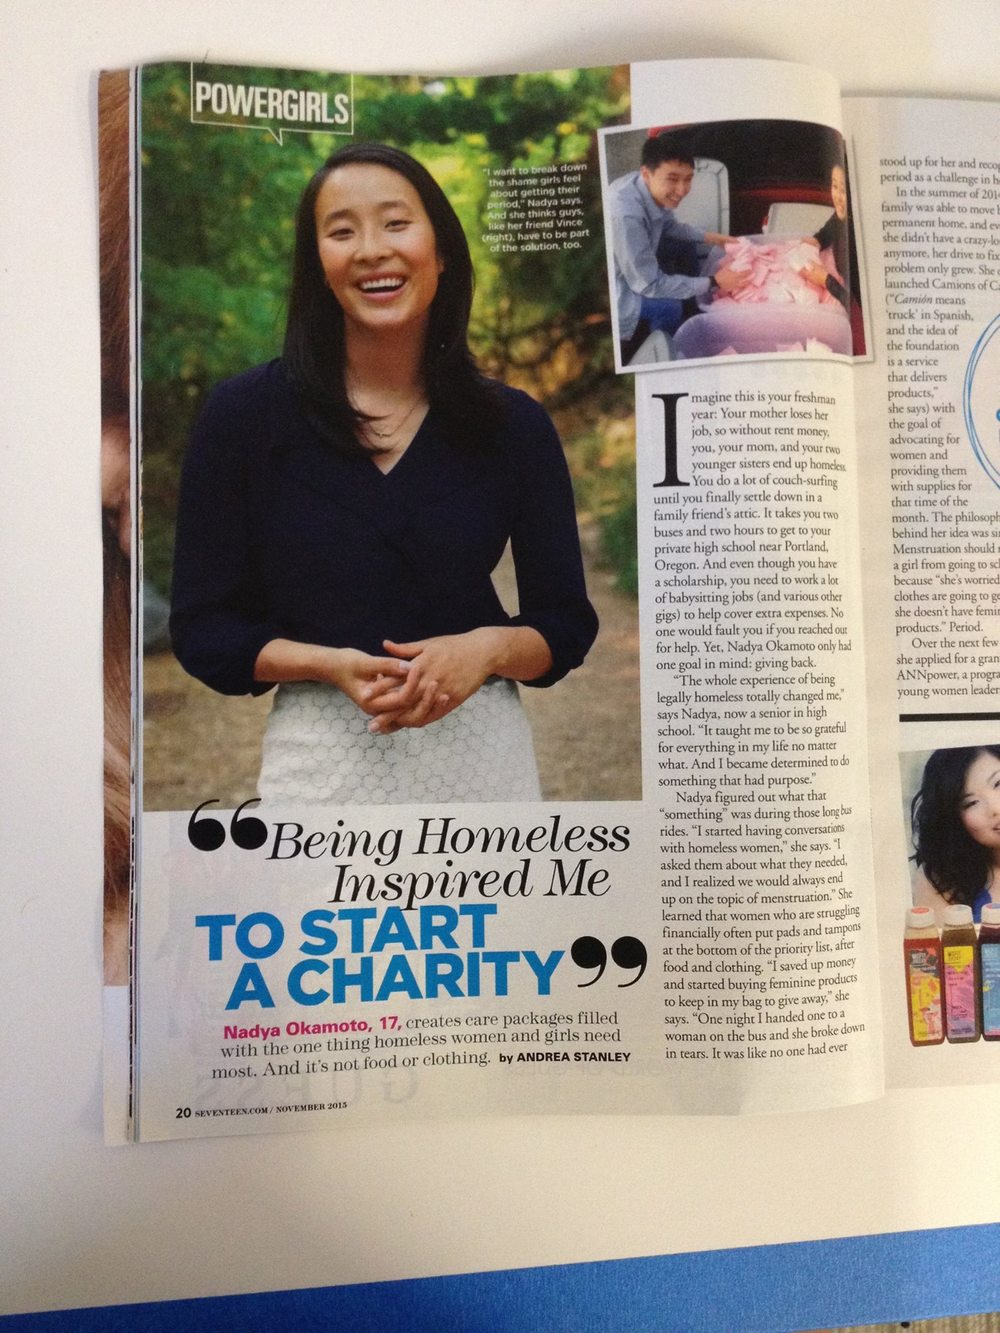 Camions of Care landed a feature in 17 magazine!